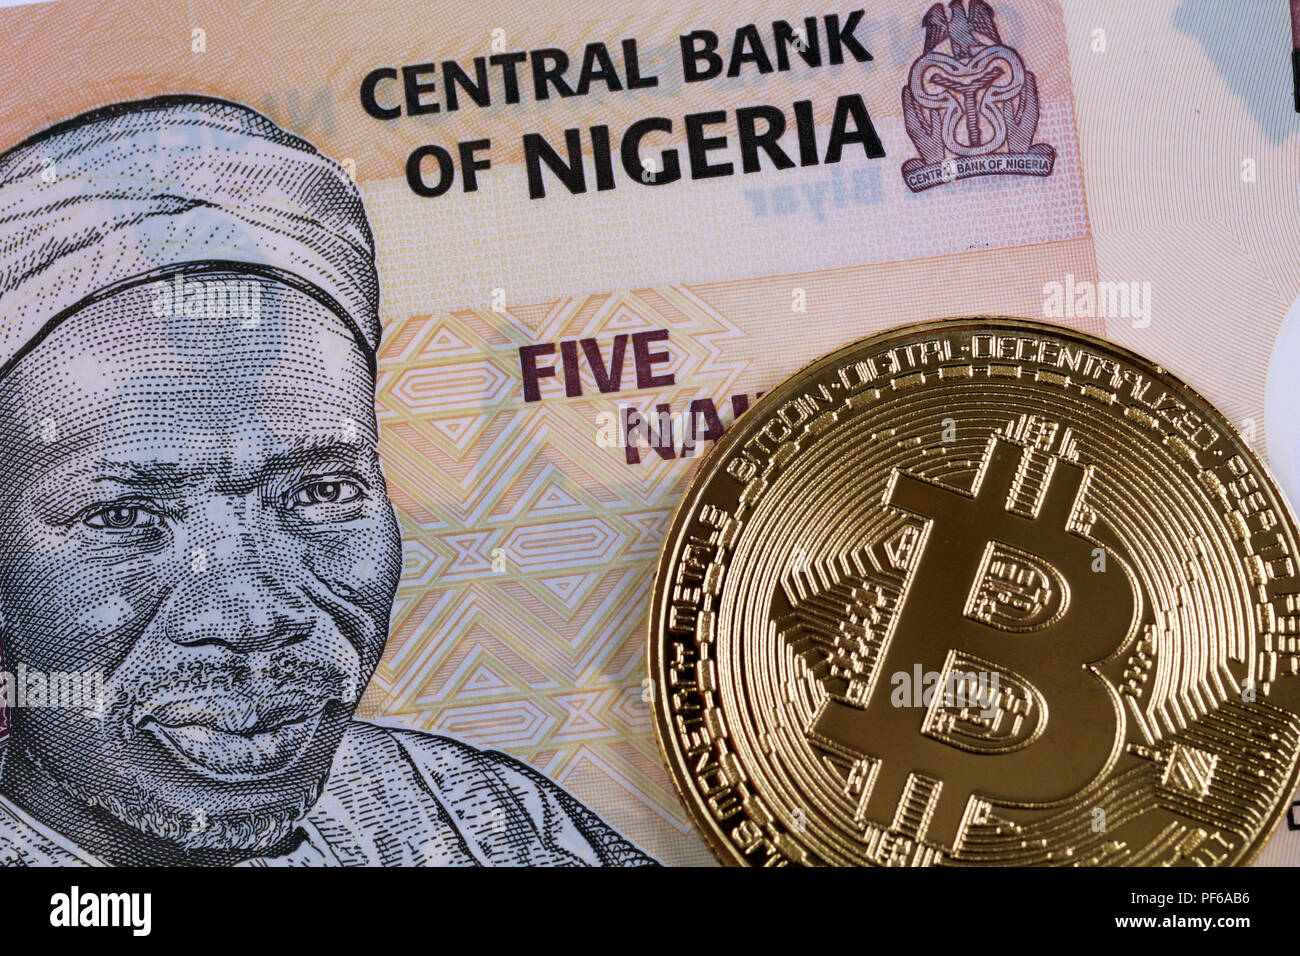 A close up image of a Nigerian five Naira bank note with a golden bitcoin - Stock Image